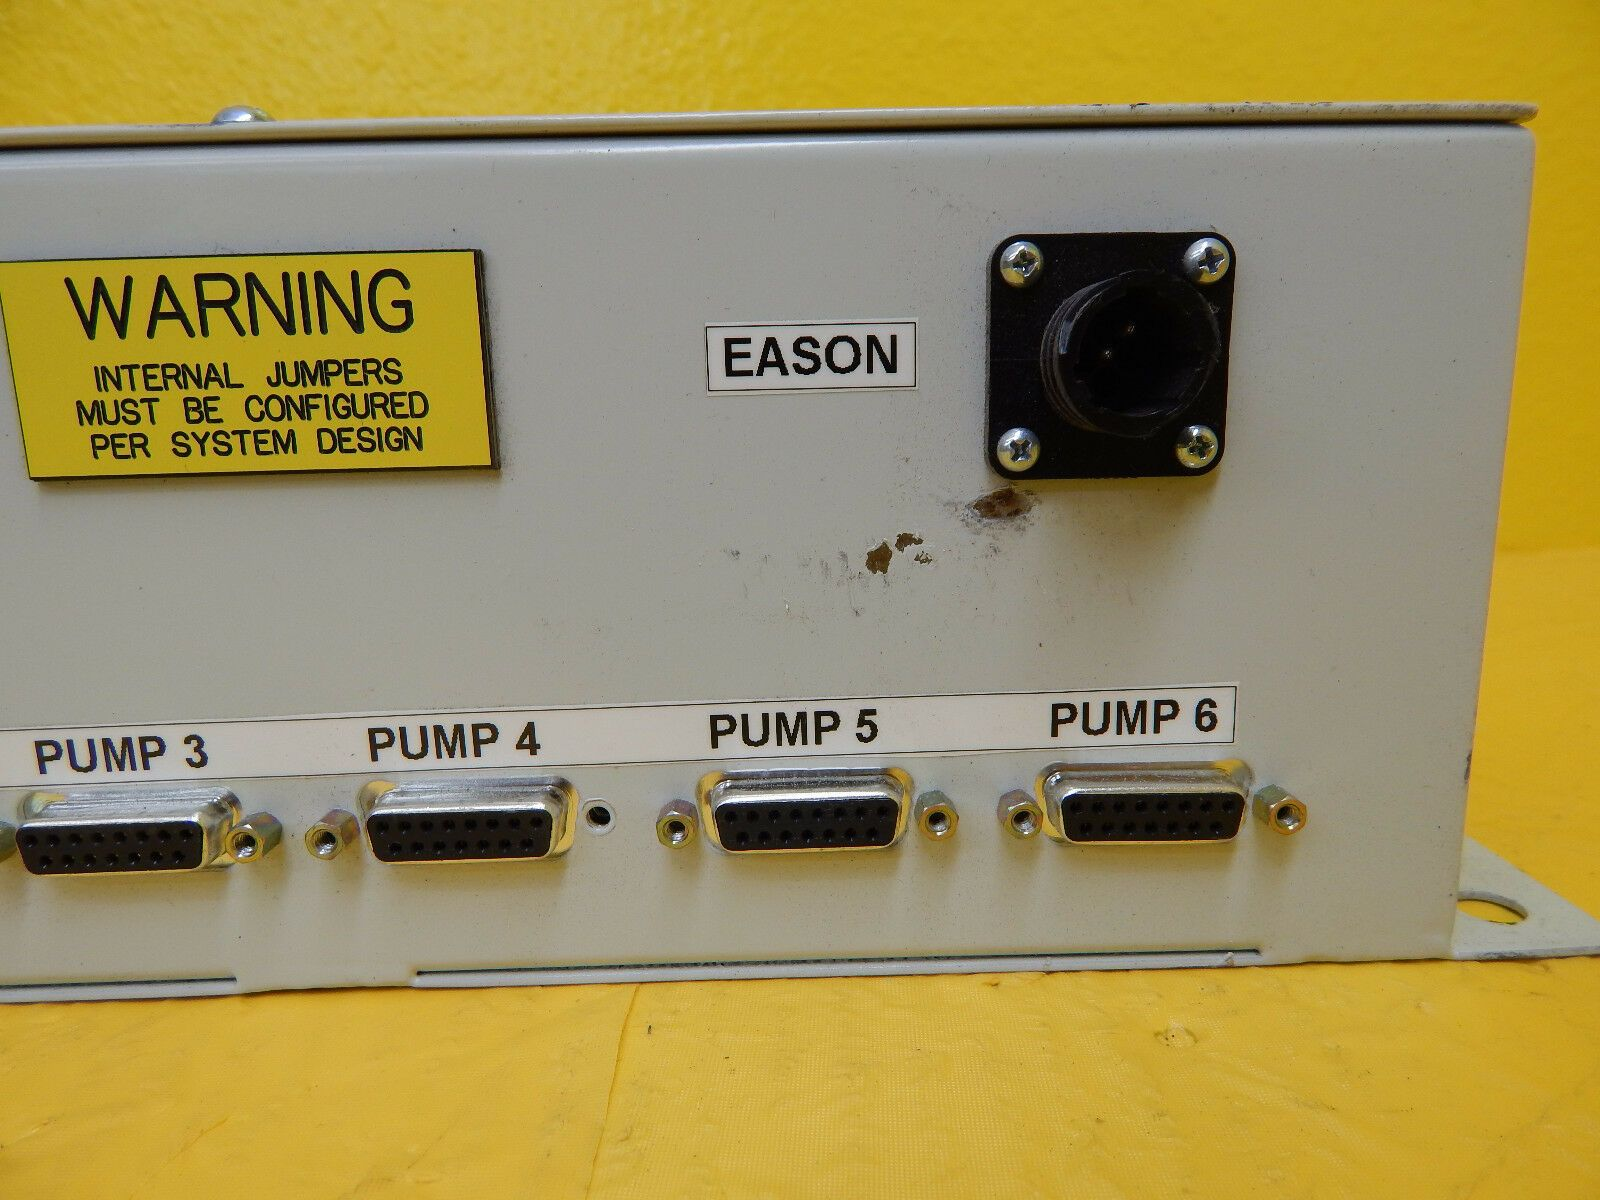 Edwards NRY0TN101US Eason Control Box Module Alarm Enclosure Rev. D Used Working